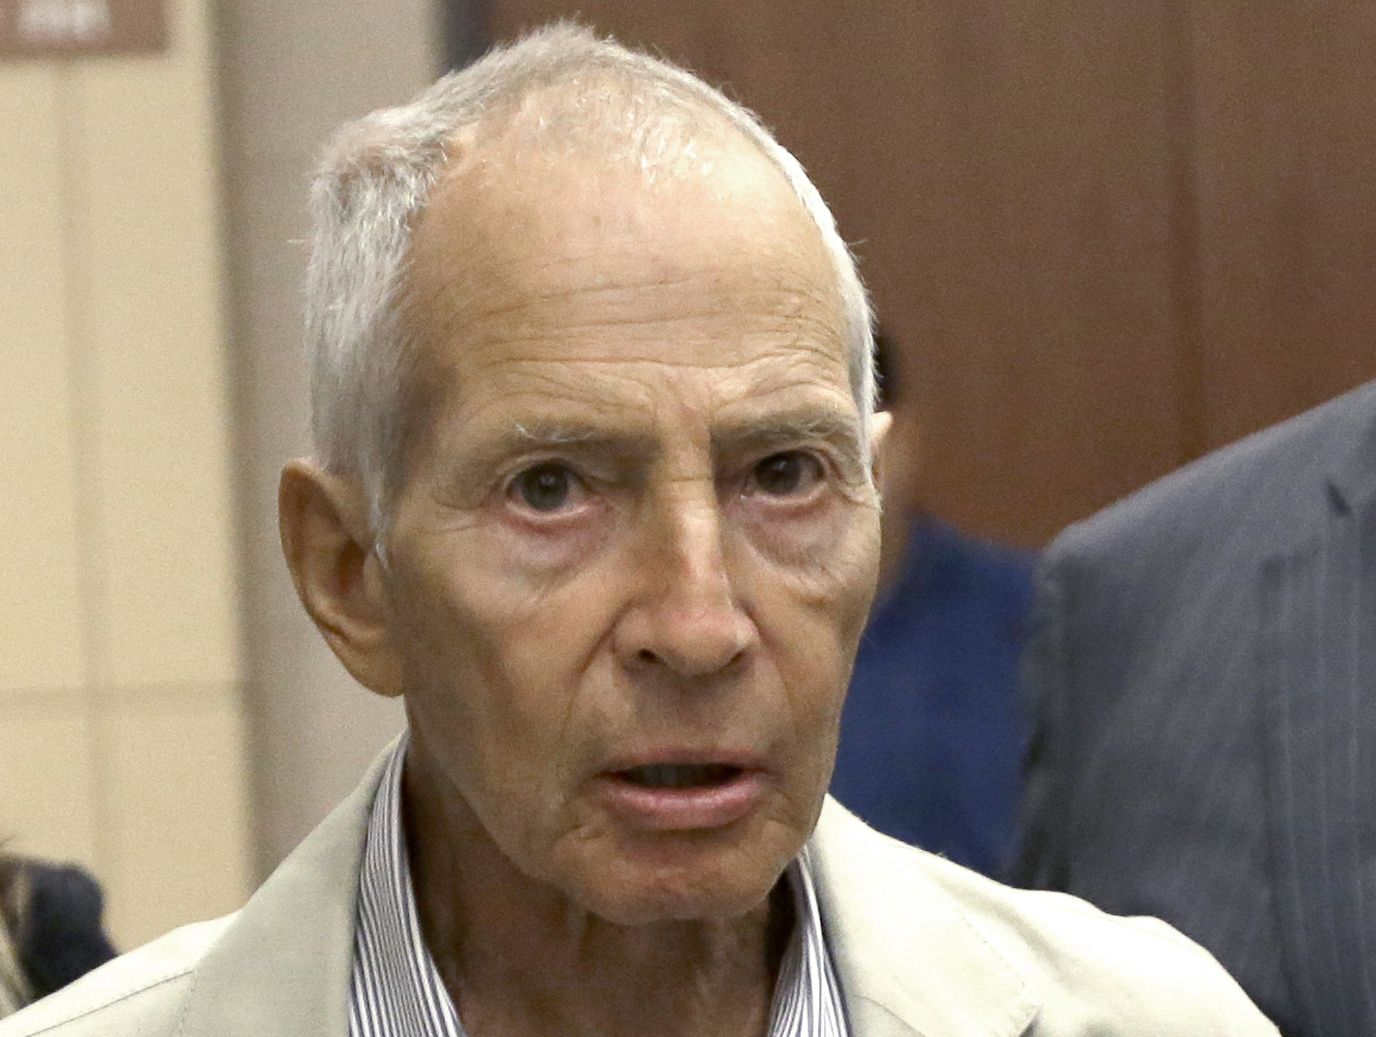 Robert Durst Says He Regrets Doing 'The Jinx' | IndieWire